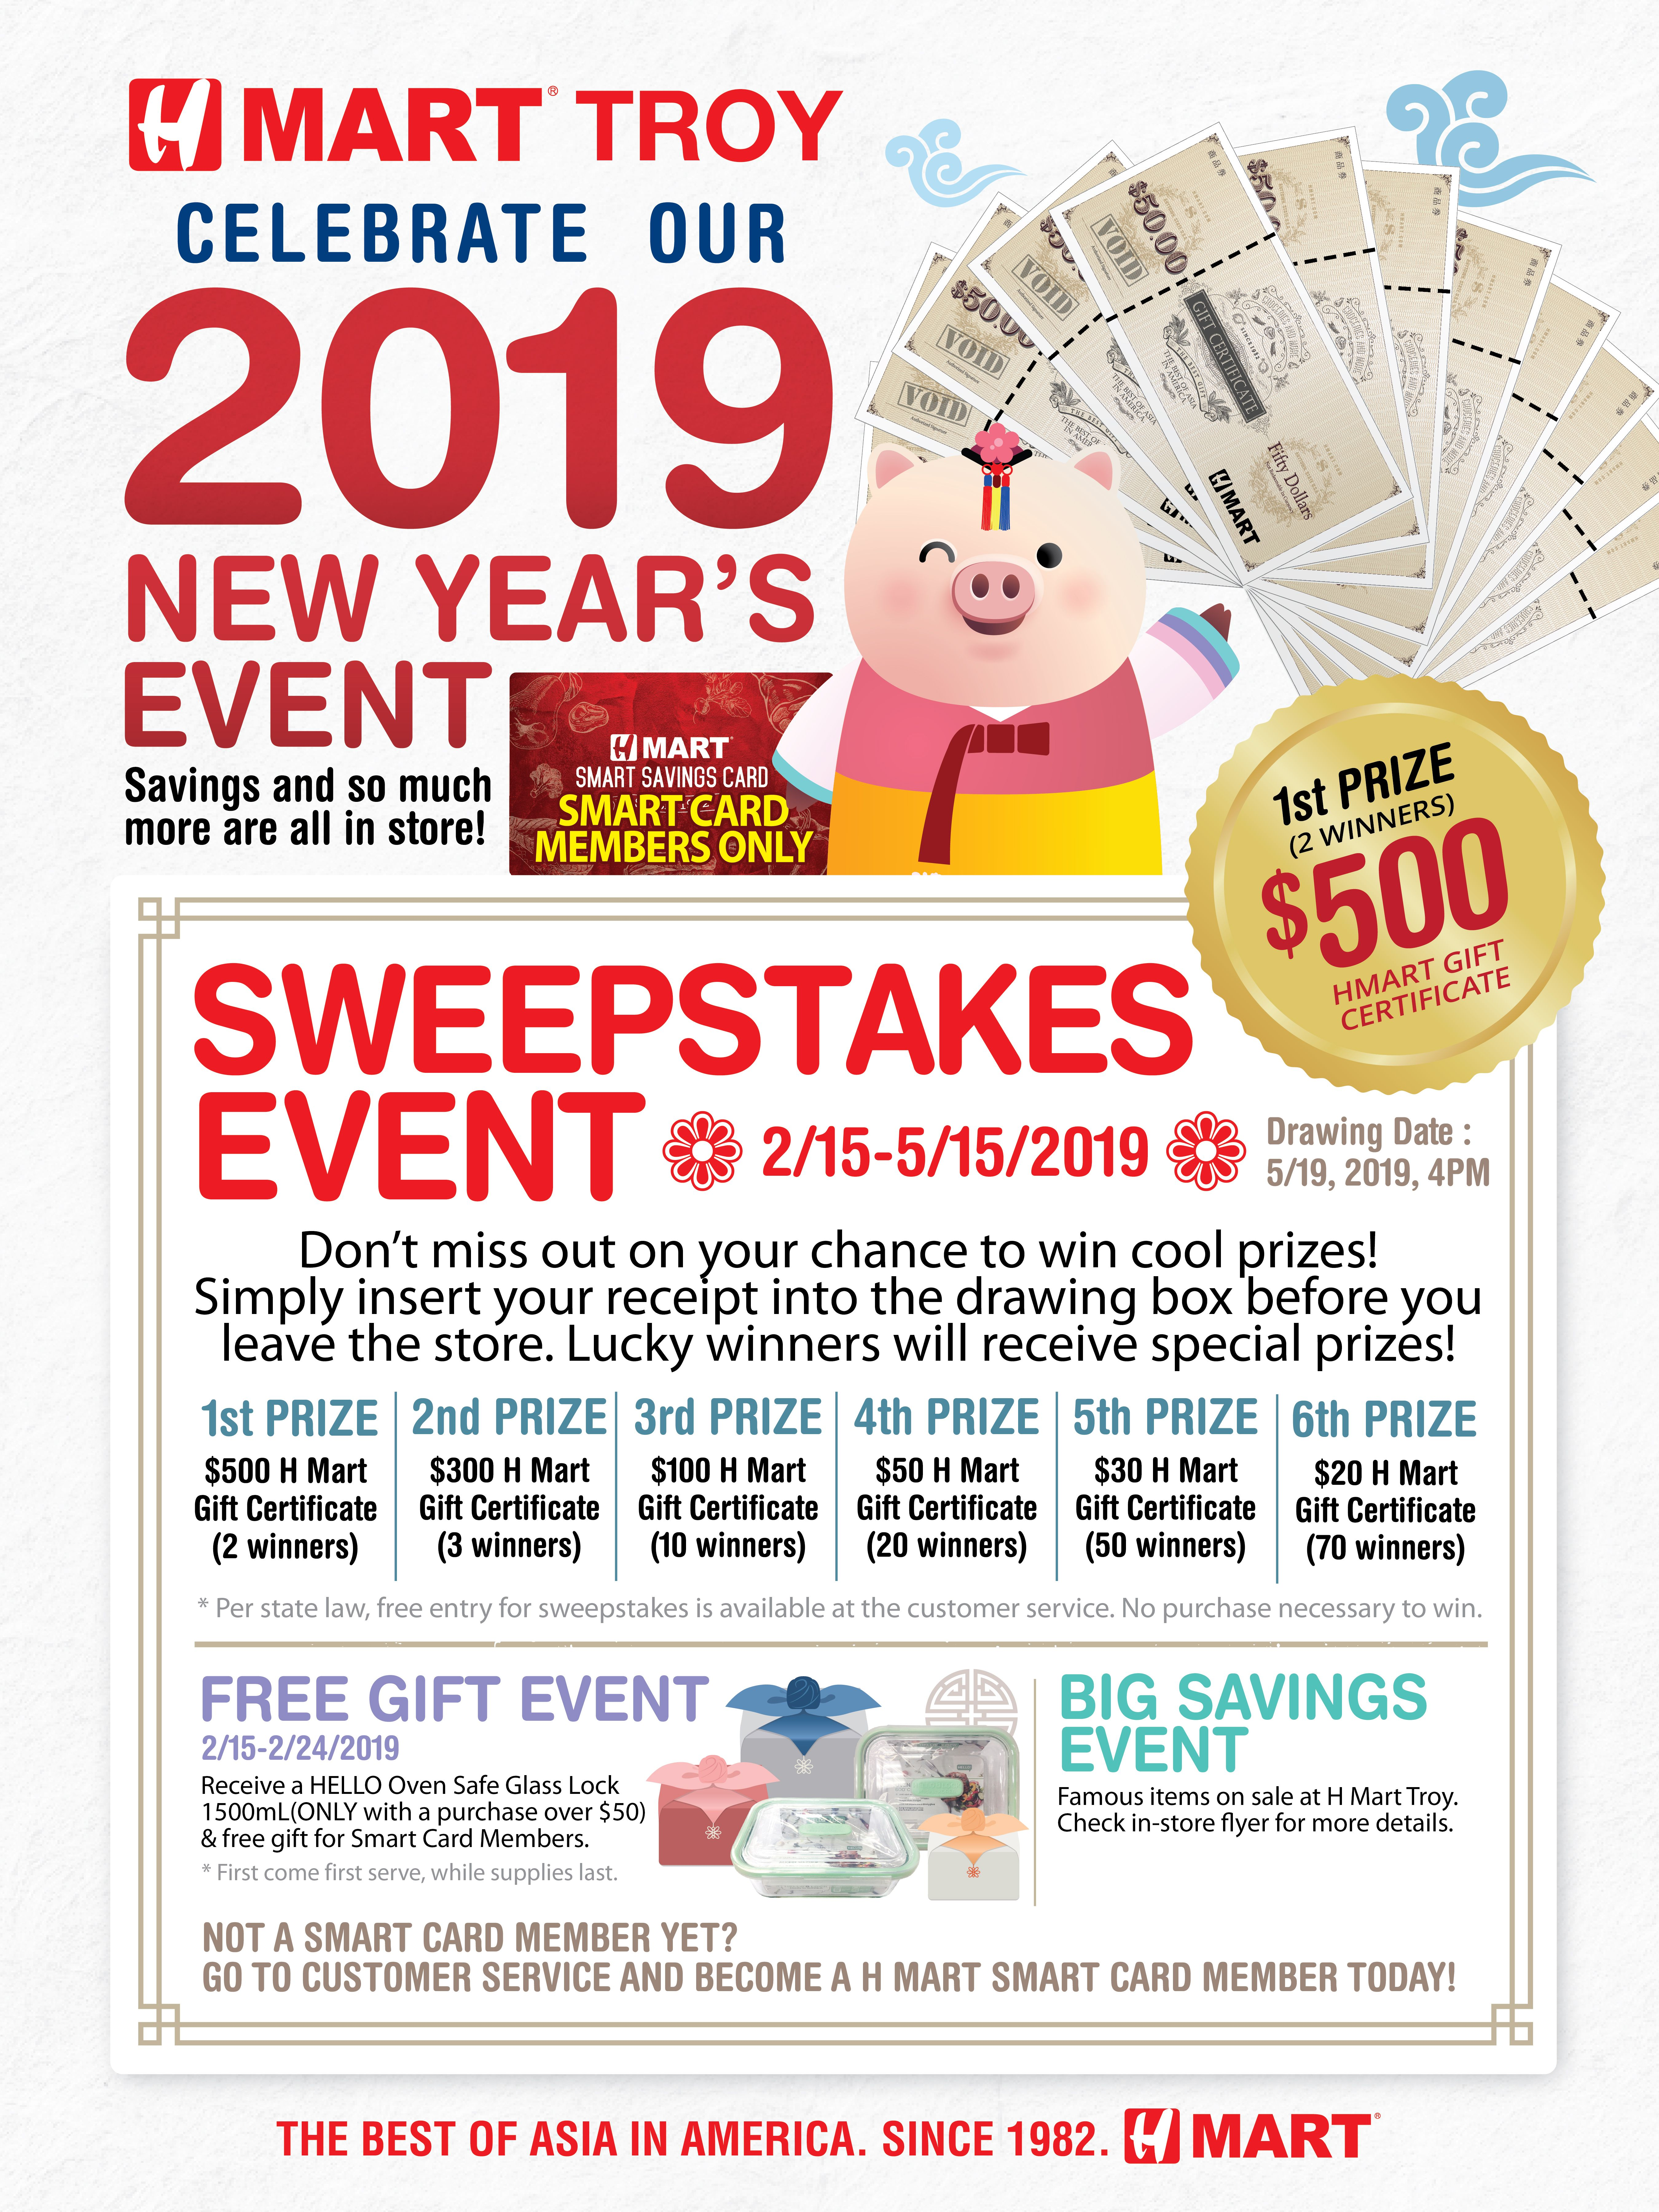 H Mart Troy Michigan] 2019 New Year Sweepstakes Event!